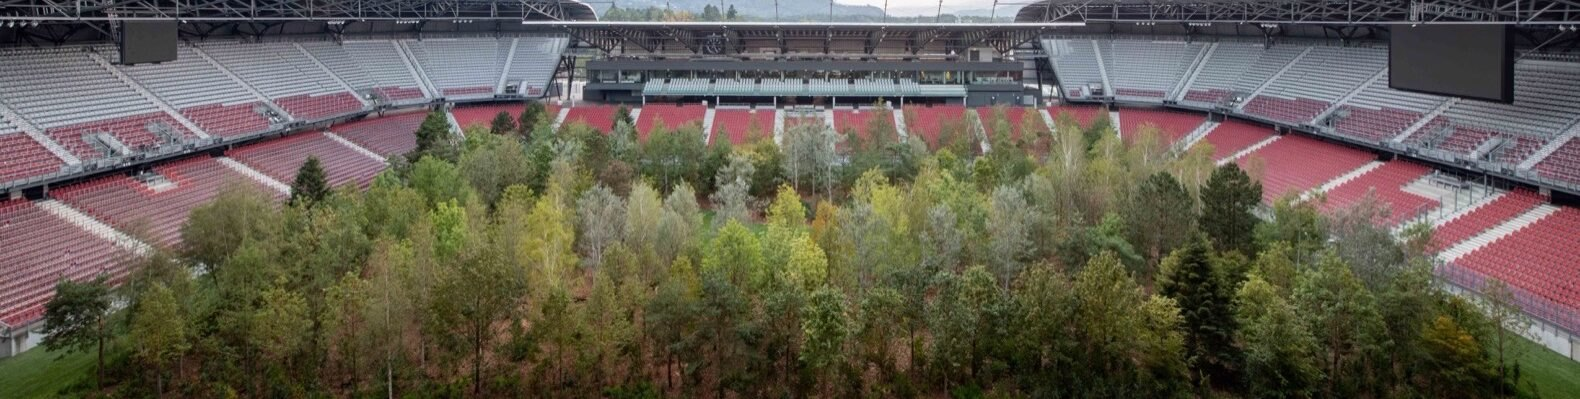 football stadium filled with trees